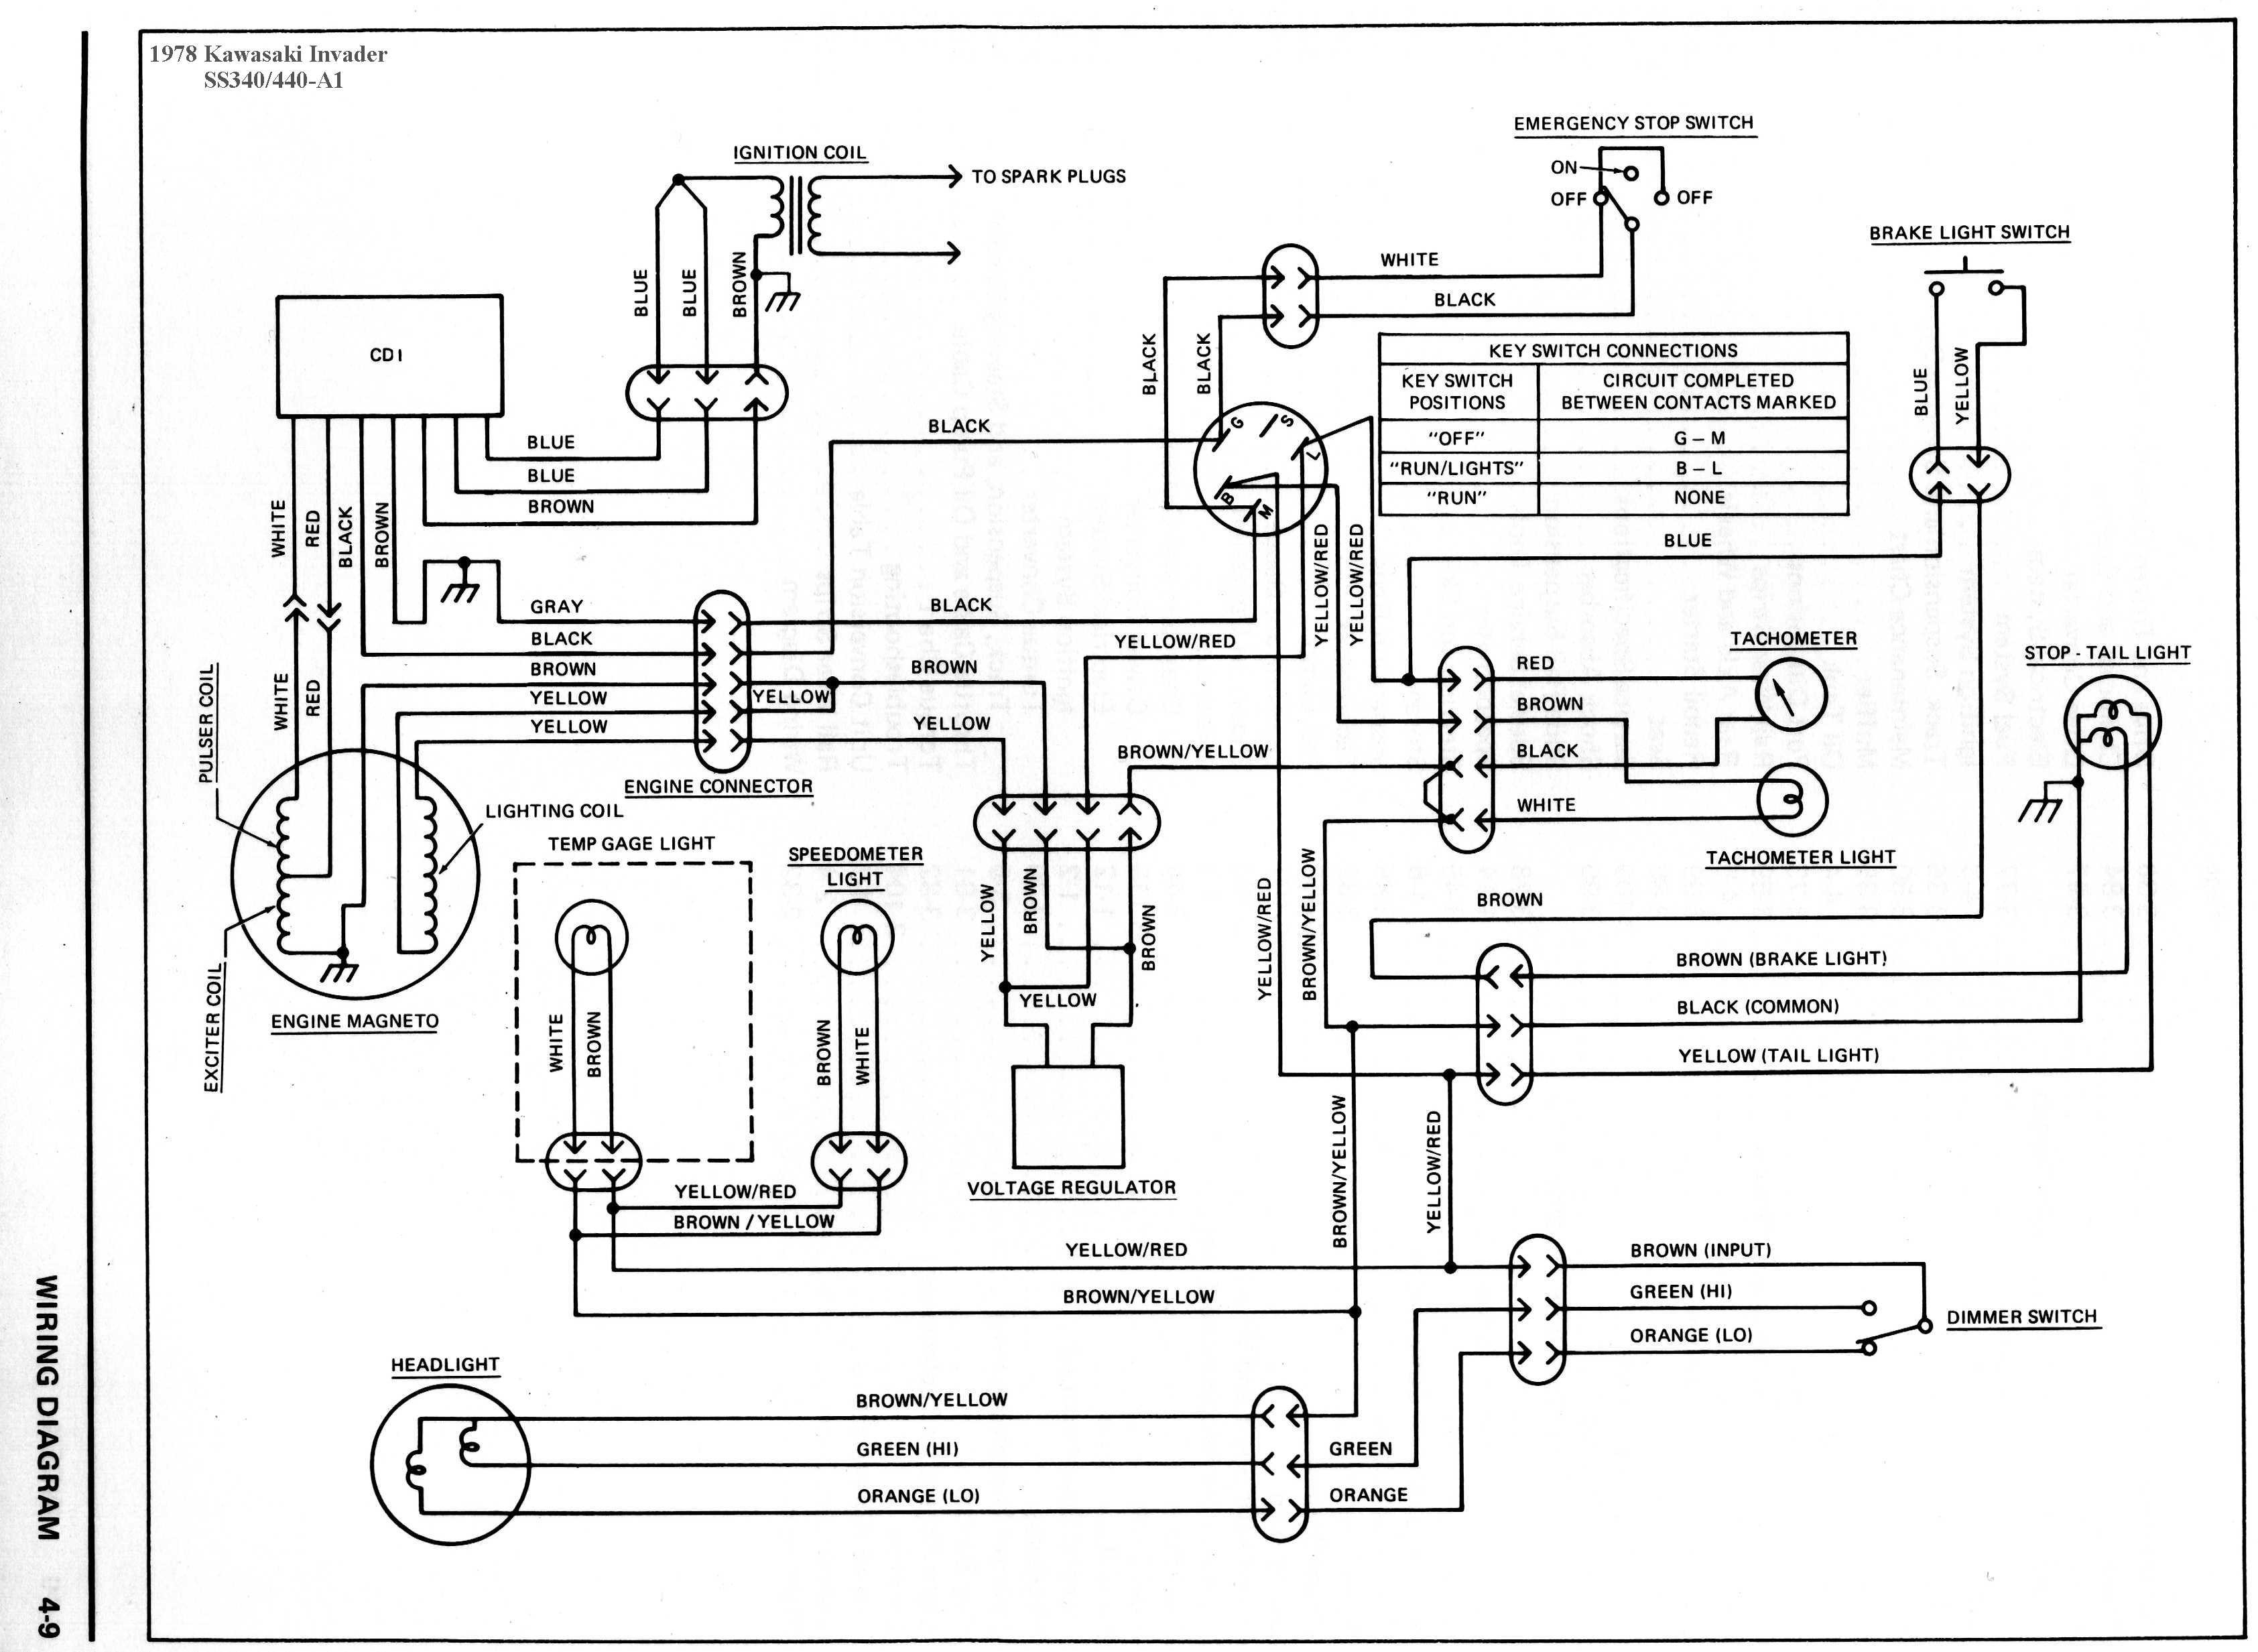 kawasaki mule ignition wiring diagram Collection-2001 Kawasaki Bayou 220 Wiring Diagram Best Kawasaki Mule 3010 Wiring Diagram 2-c